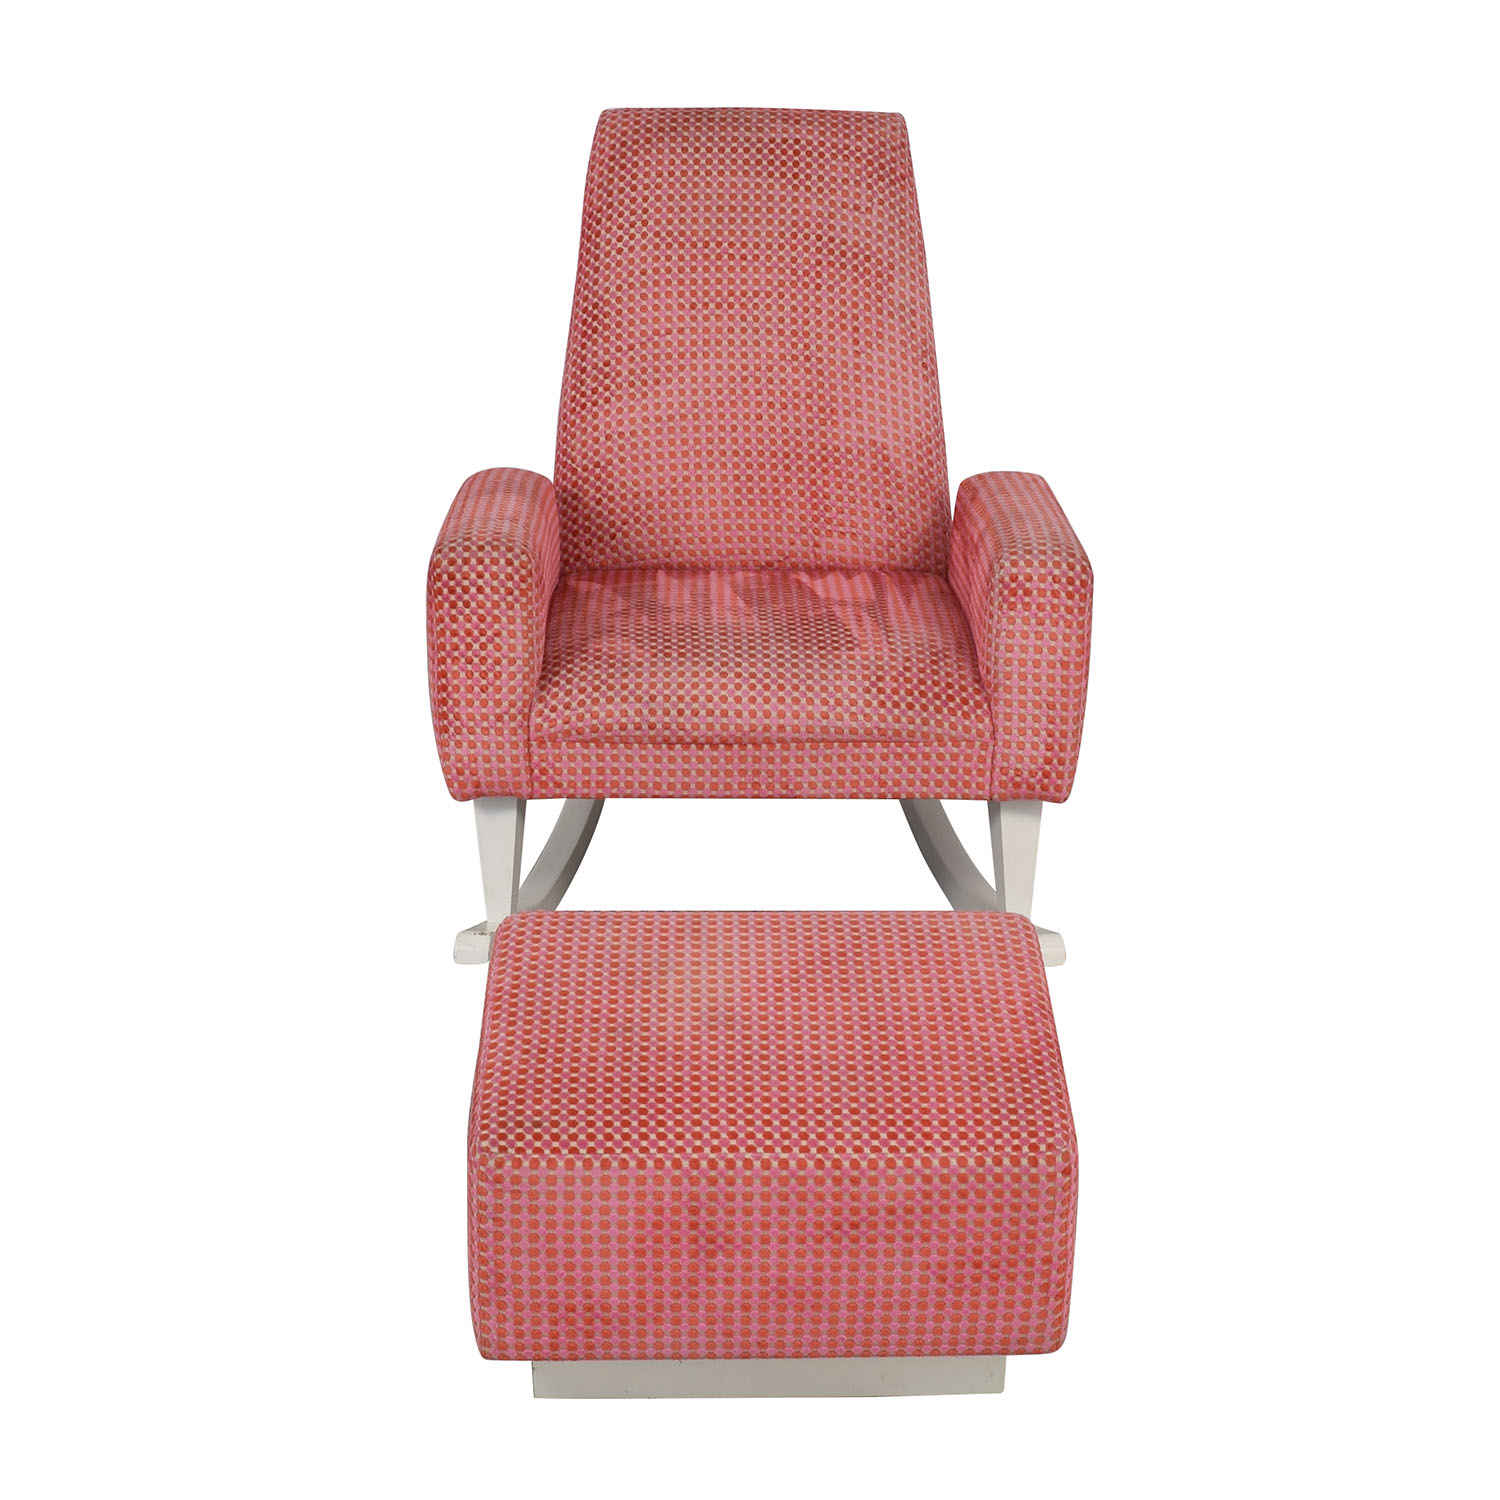 Furniture Masters Furniture Masters Pink Chair with Ottoman on sale